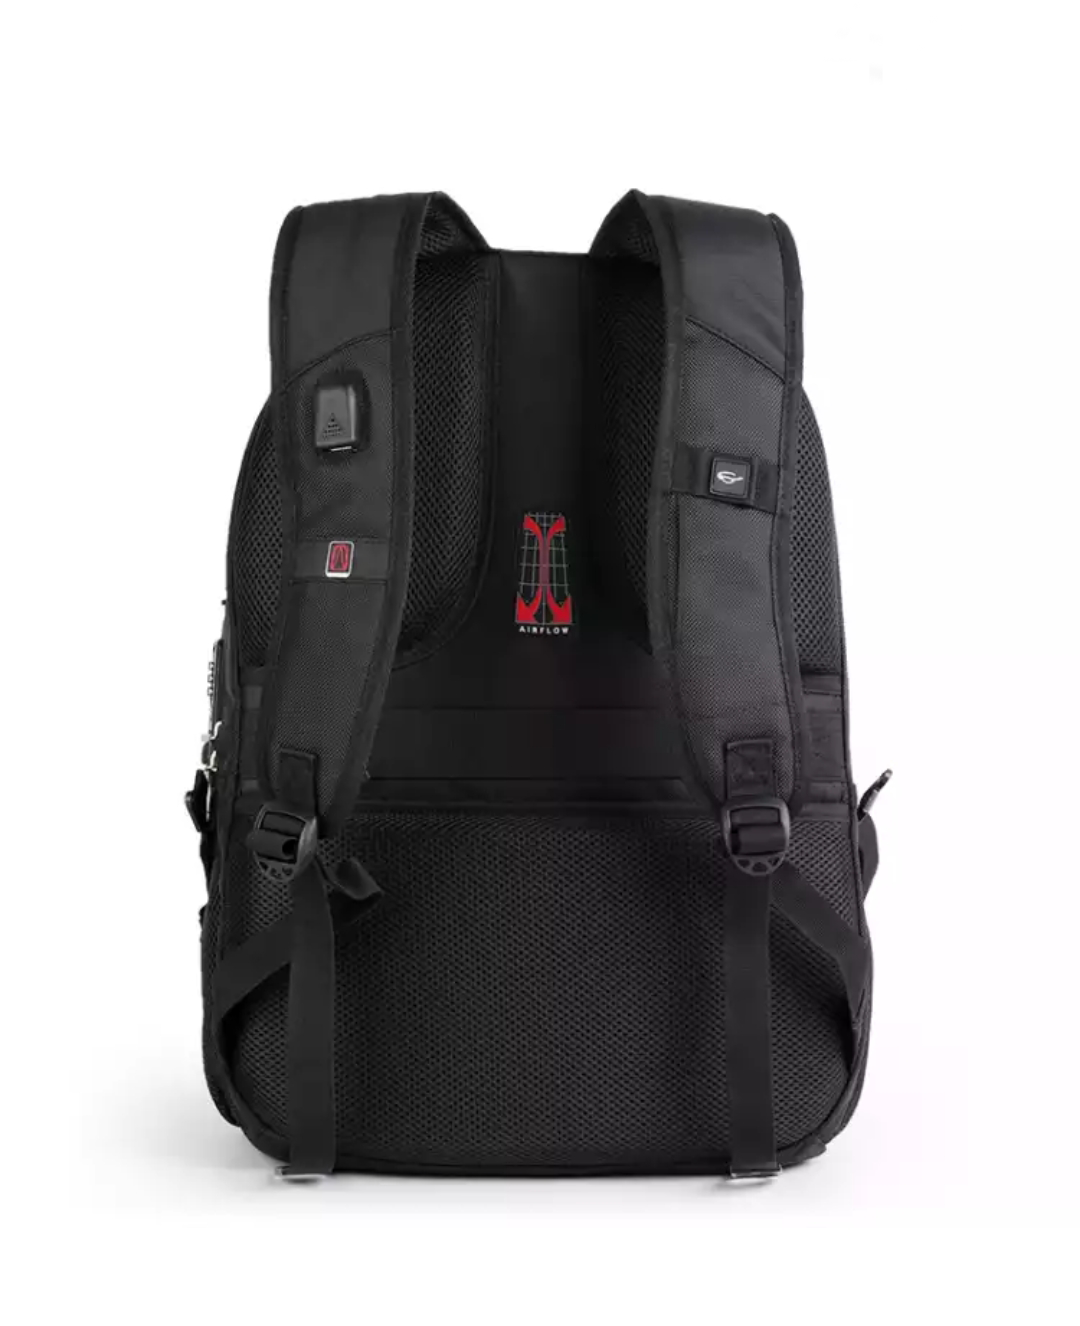 Quality Waterproof Swiss Gear Travel Laptop Bag Backpack for Online Retailer